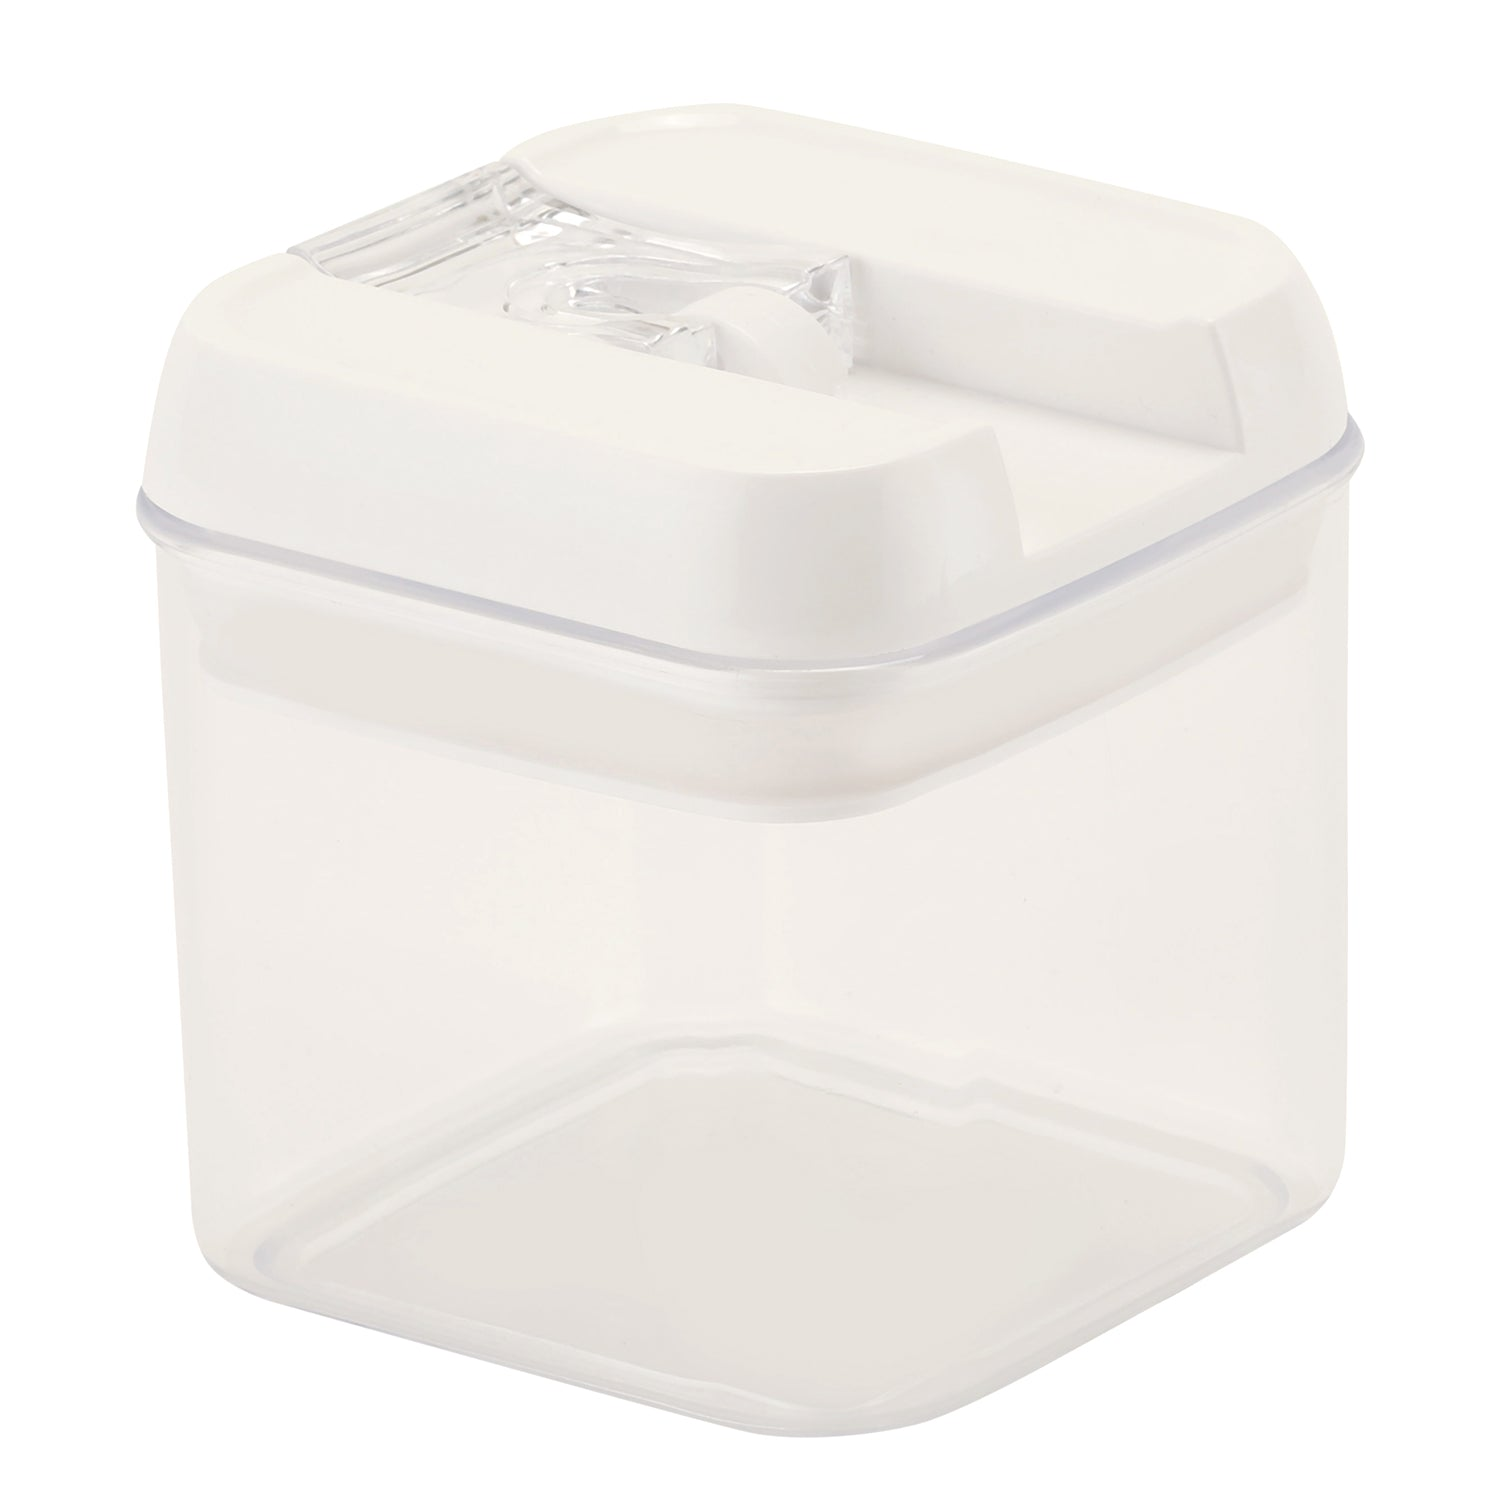 Royalford RF7696 Pop Square Canister, 1.0L - Stackable Food Storage Container with Airtight lids, Sweet, Snack, Spaghetti & Cereal Dispenser – Durable, Transparent, Mini Pantry Storage Organizers for Kitchen